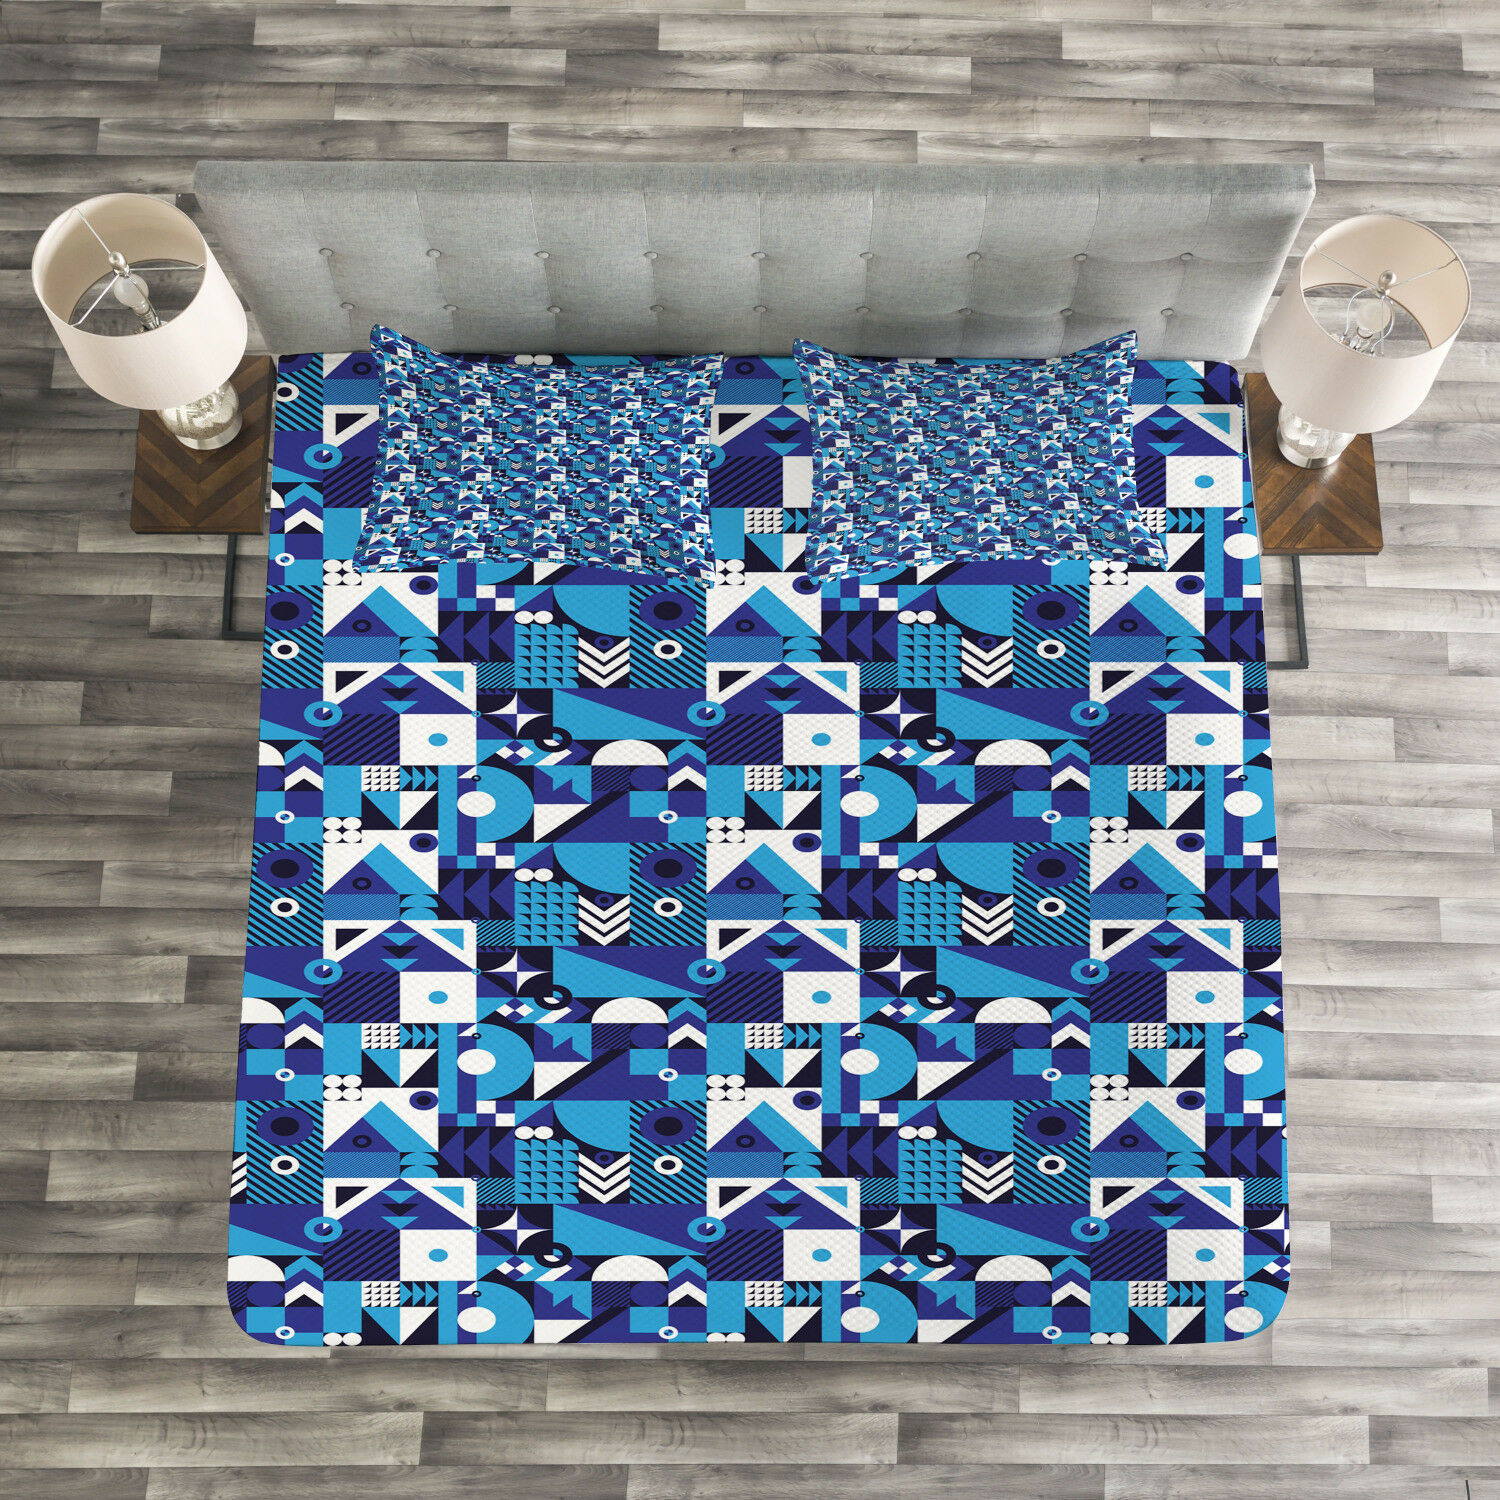 Navy bluee Quilted Bedspread & Pillow Shams Set, Contemporary Abstract Print